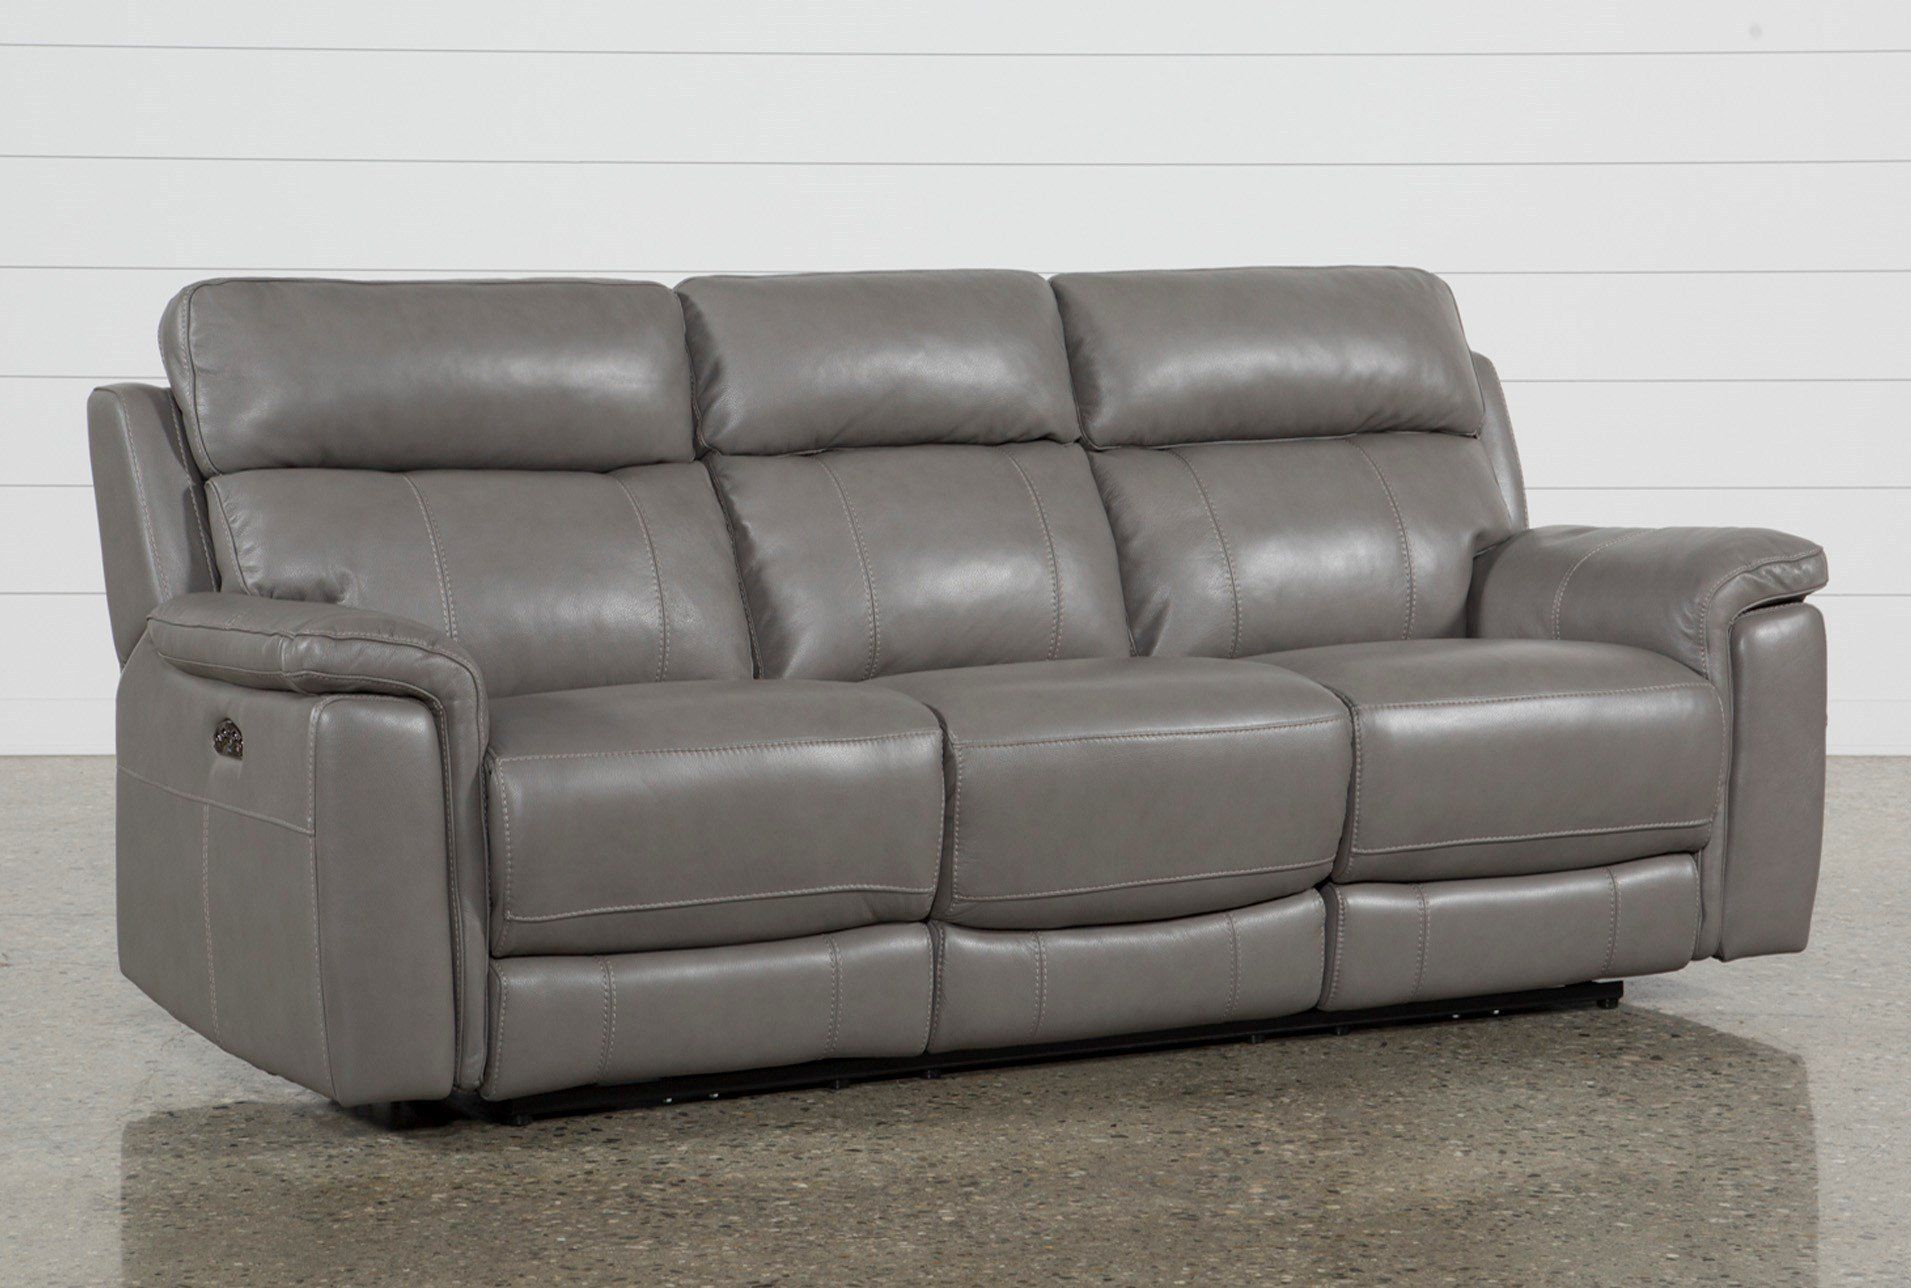 """Dino Grey Leather 91"""" Power Reclining Sofa With Power In Pacifica Gray Power Reclining Sofas (View 7 of 15)"""